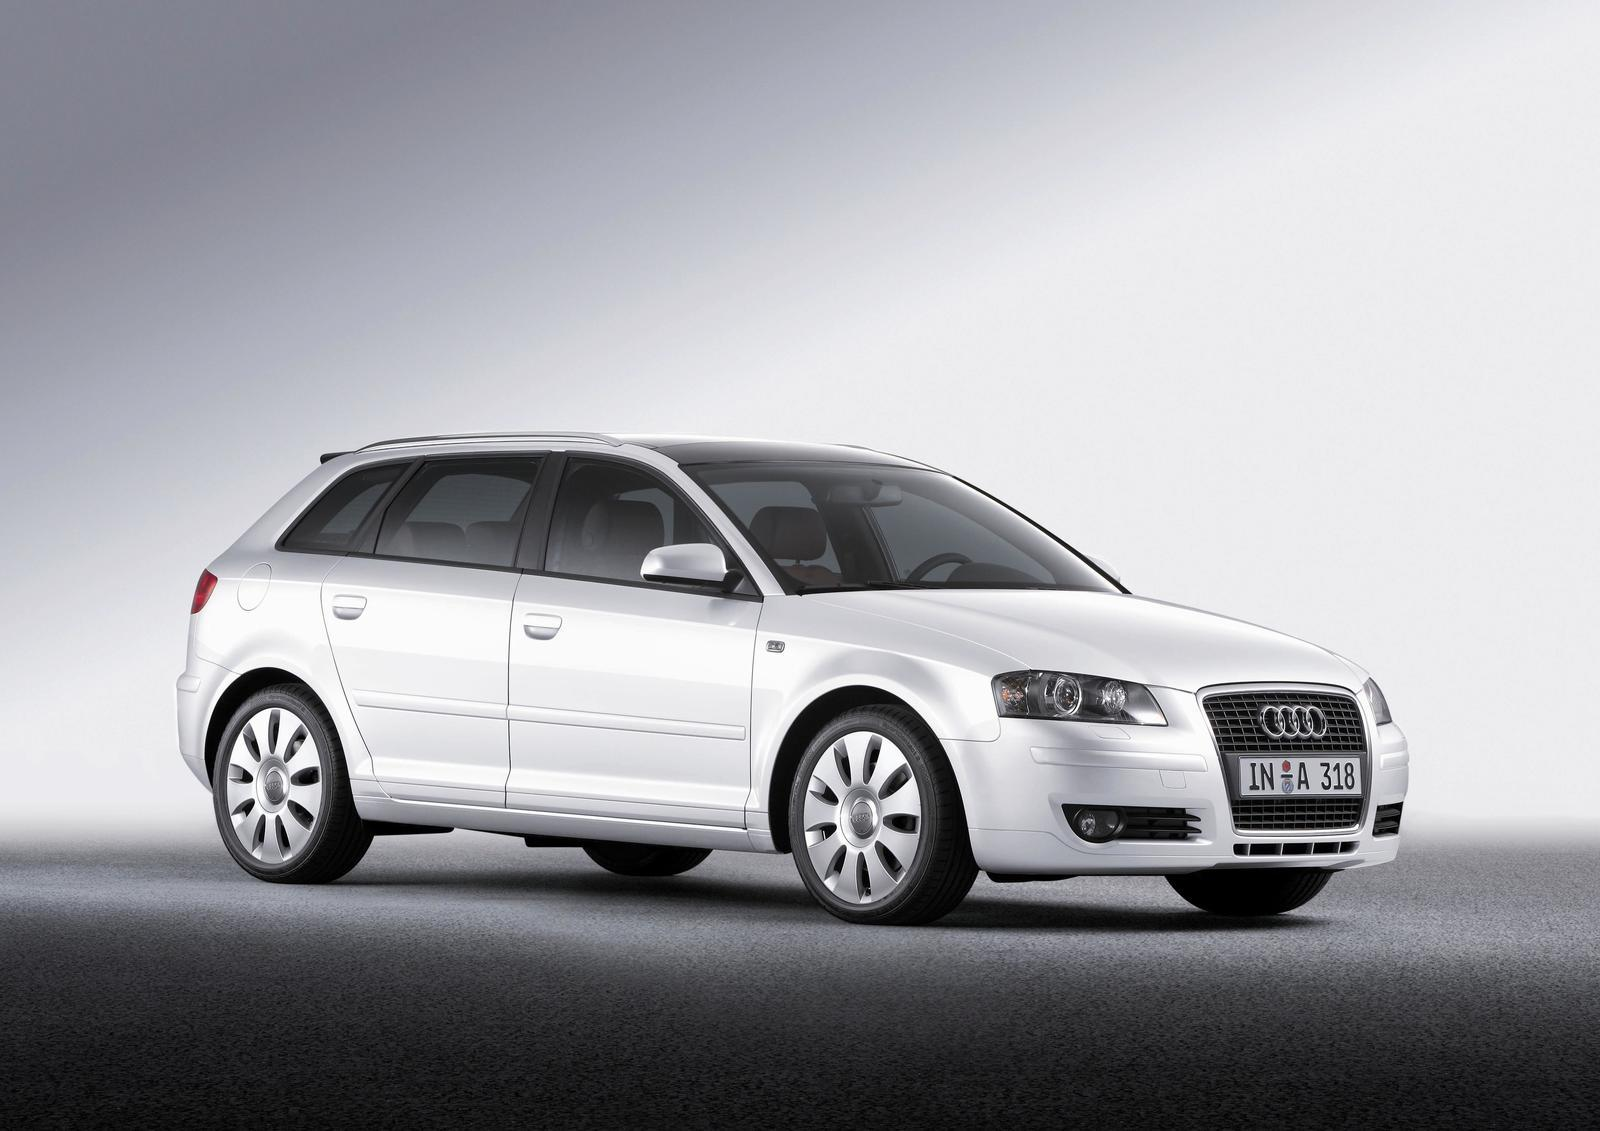 2007 audi a3 sportback review top speed for Audi a3 sportback dimensioni